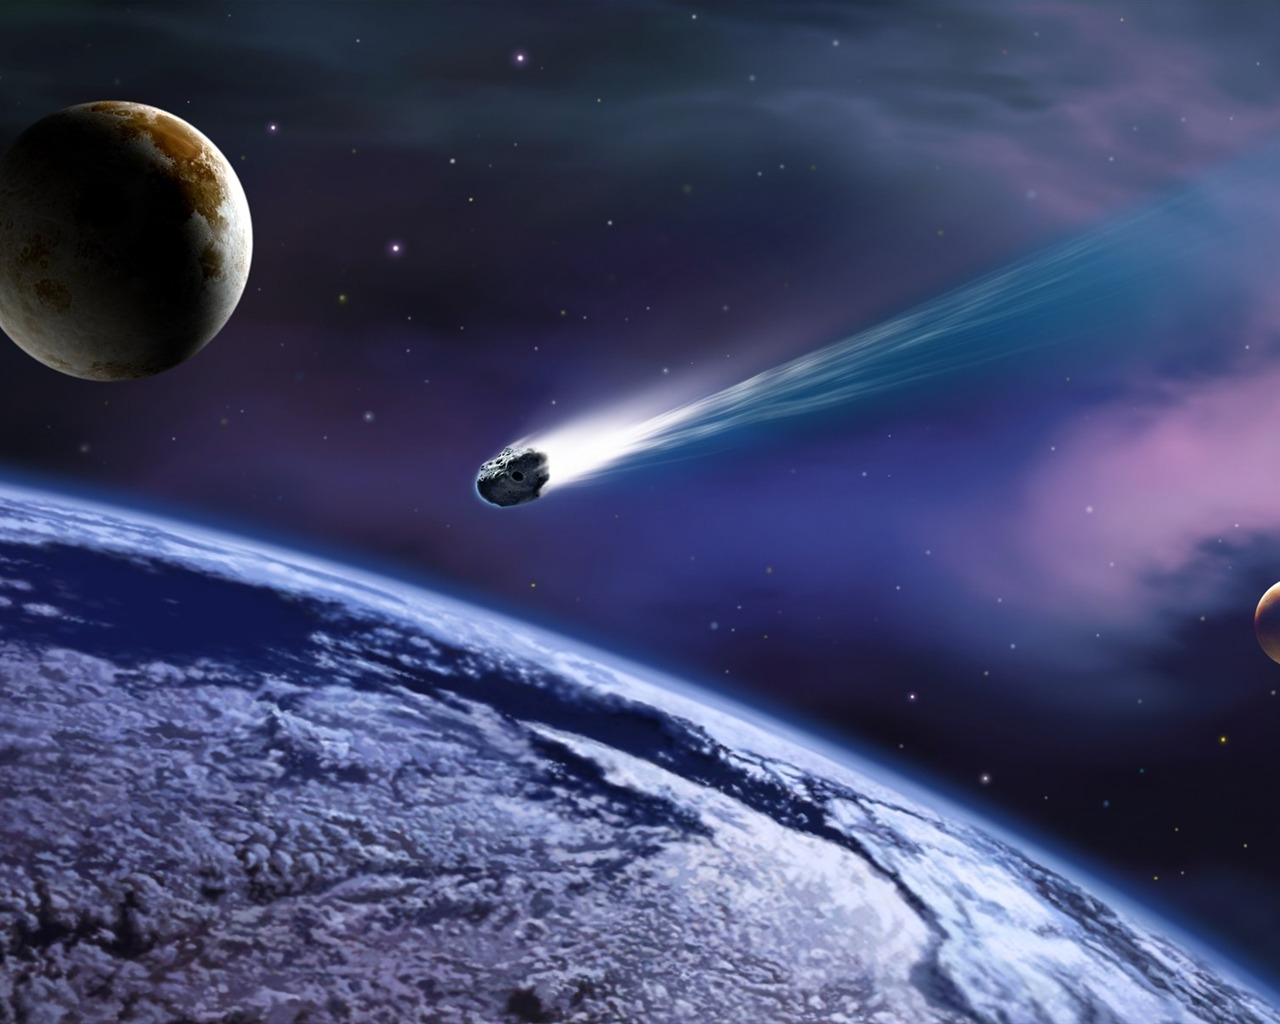 comet or asteroid approaching earth - photo #12